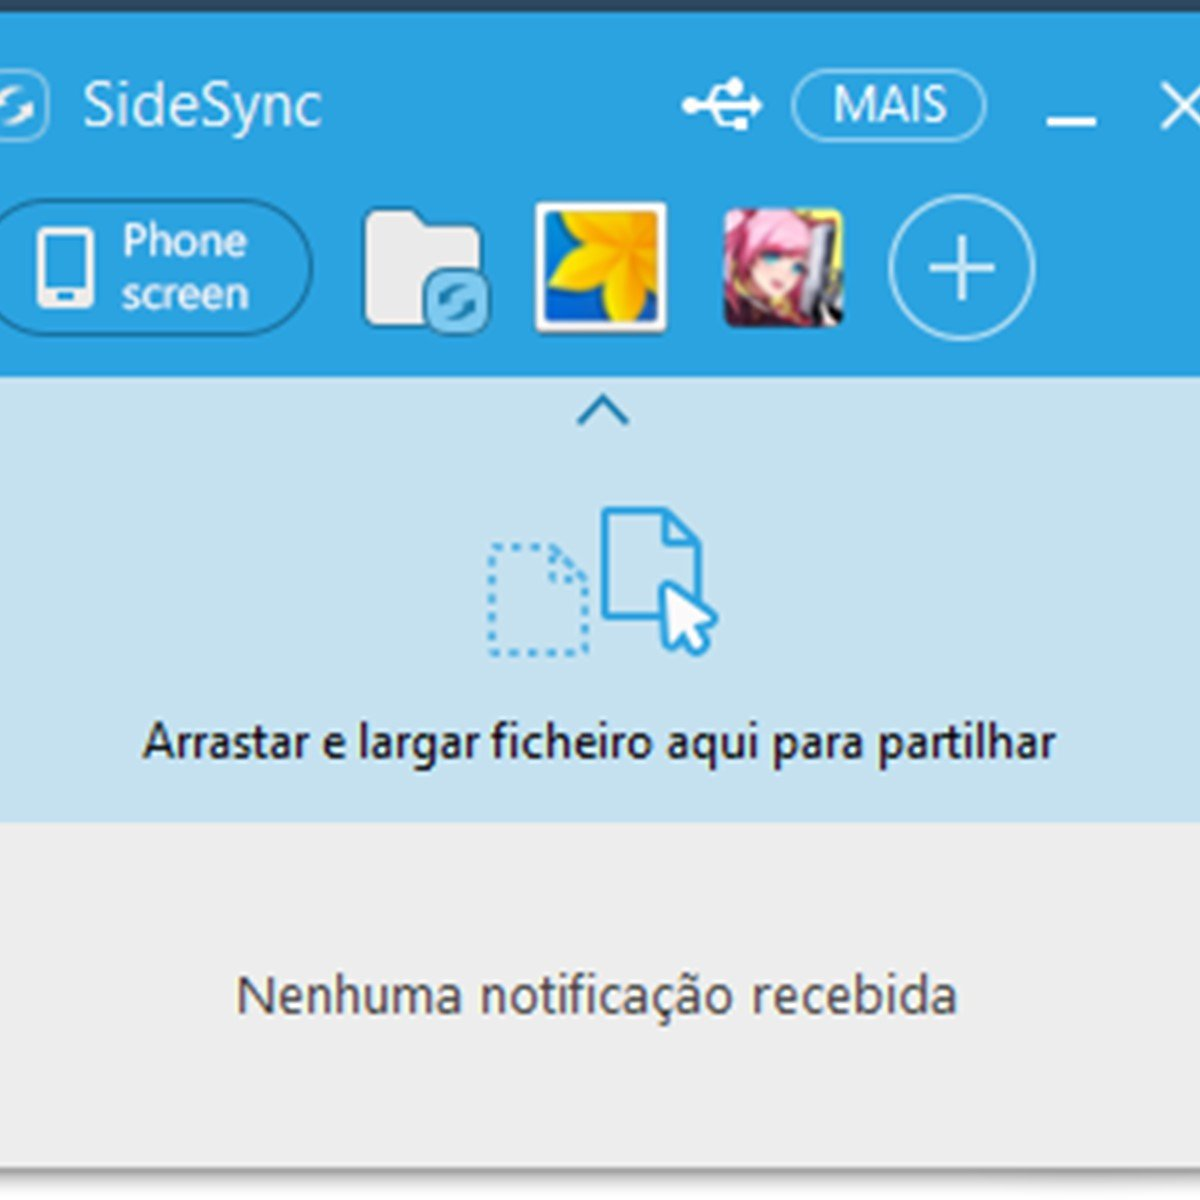 Samsung SideSync Alternatives and Similar Software